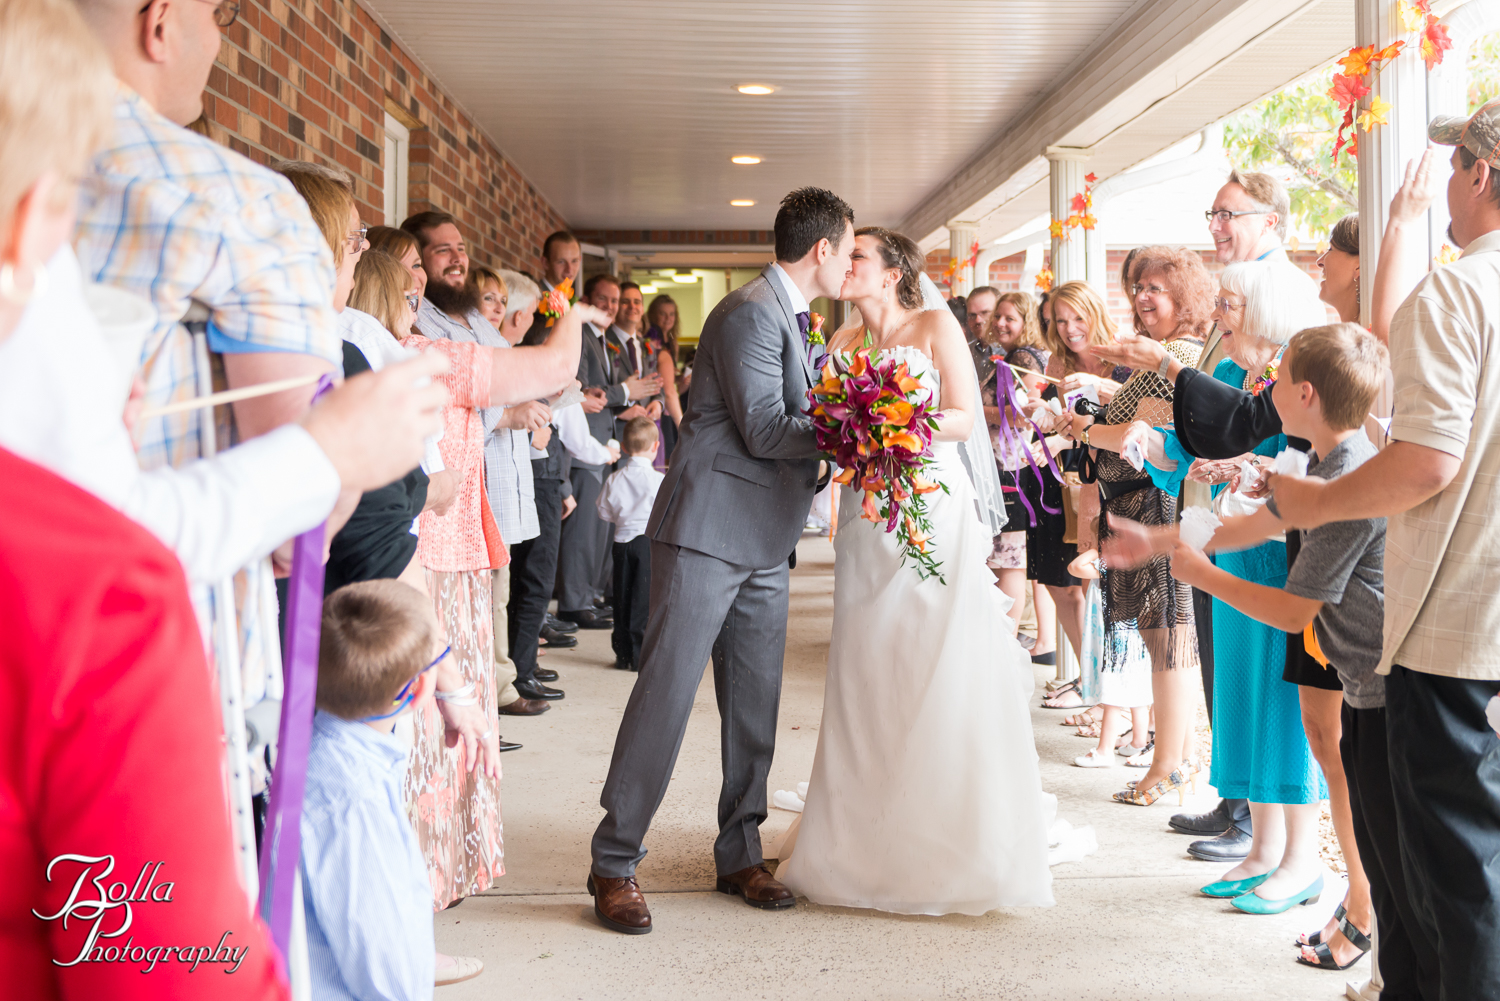 Bolla_Photography_St_Louis_wedding_photographer-0238.jpg